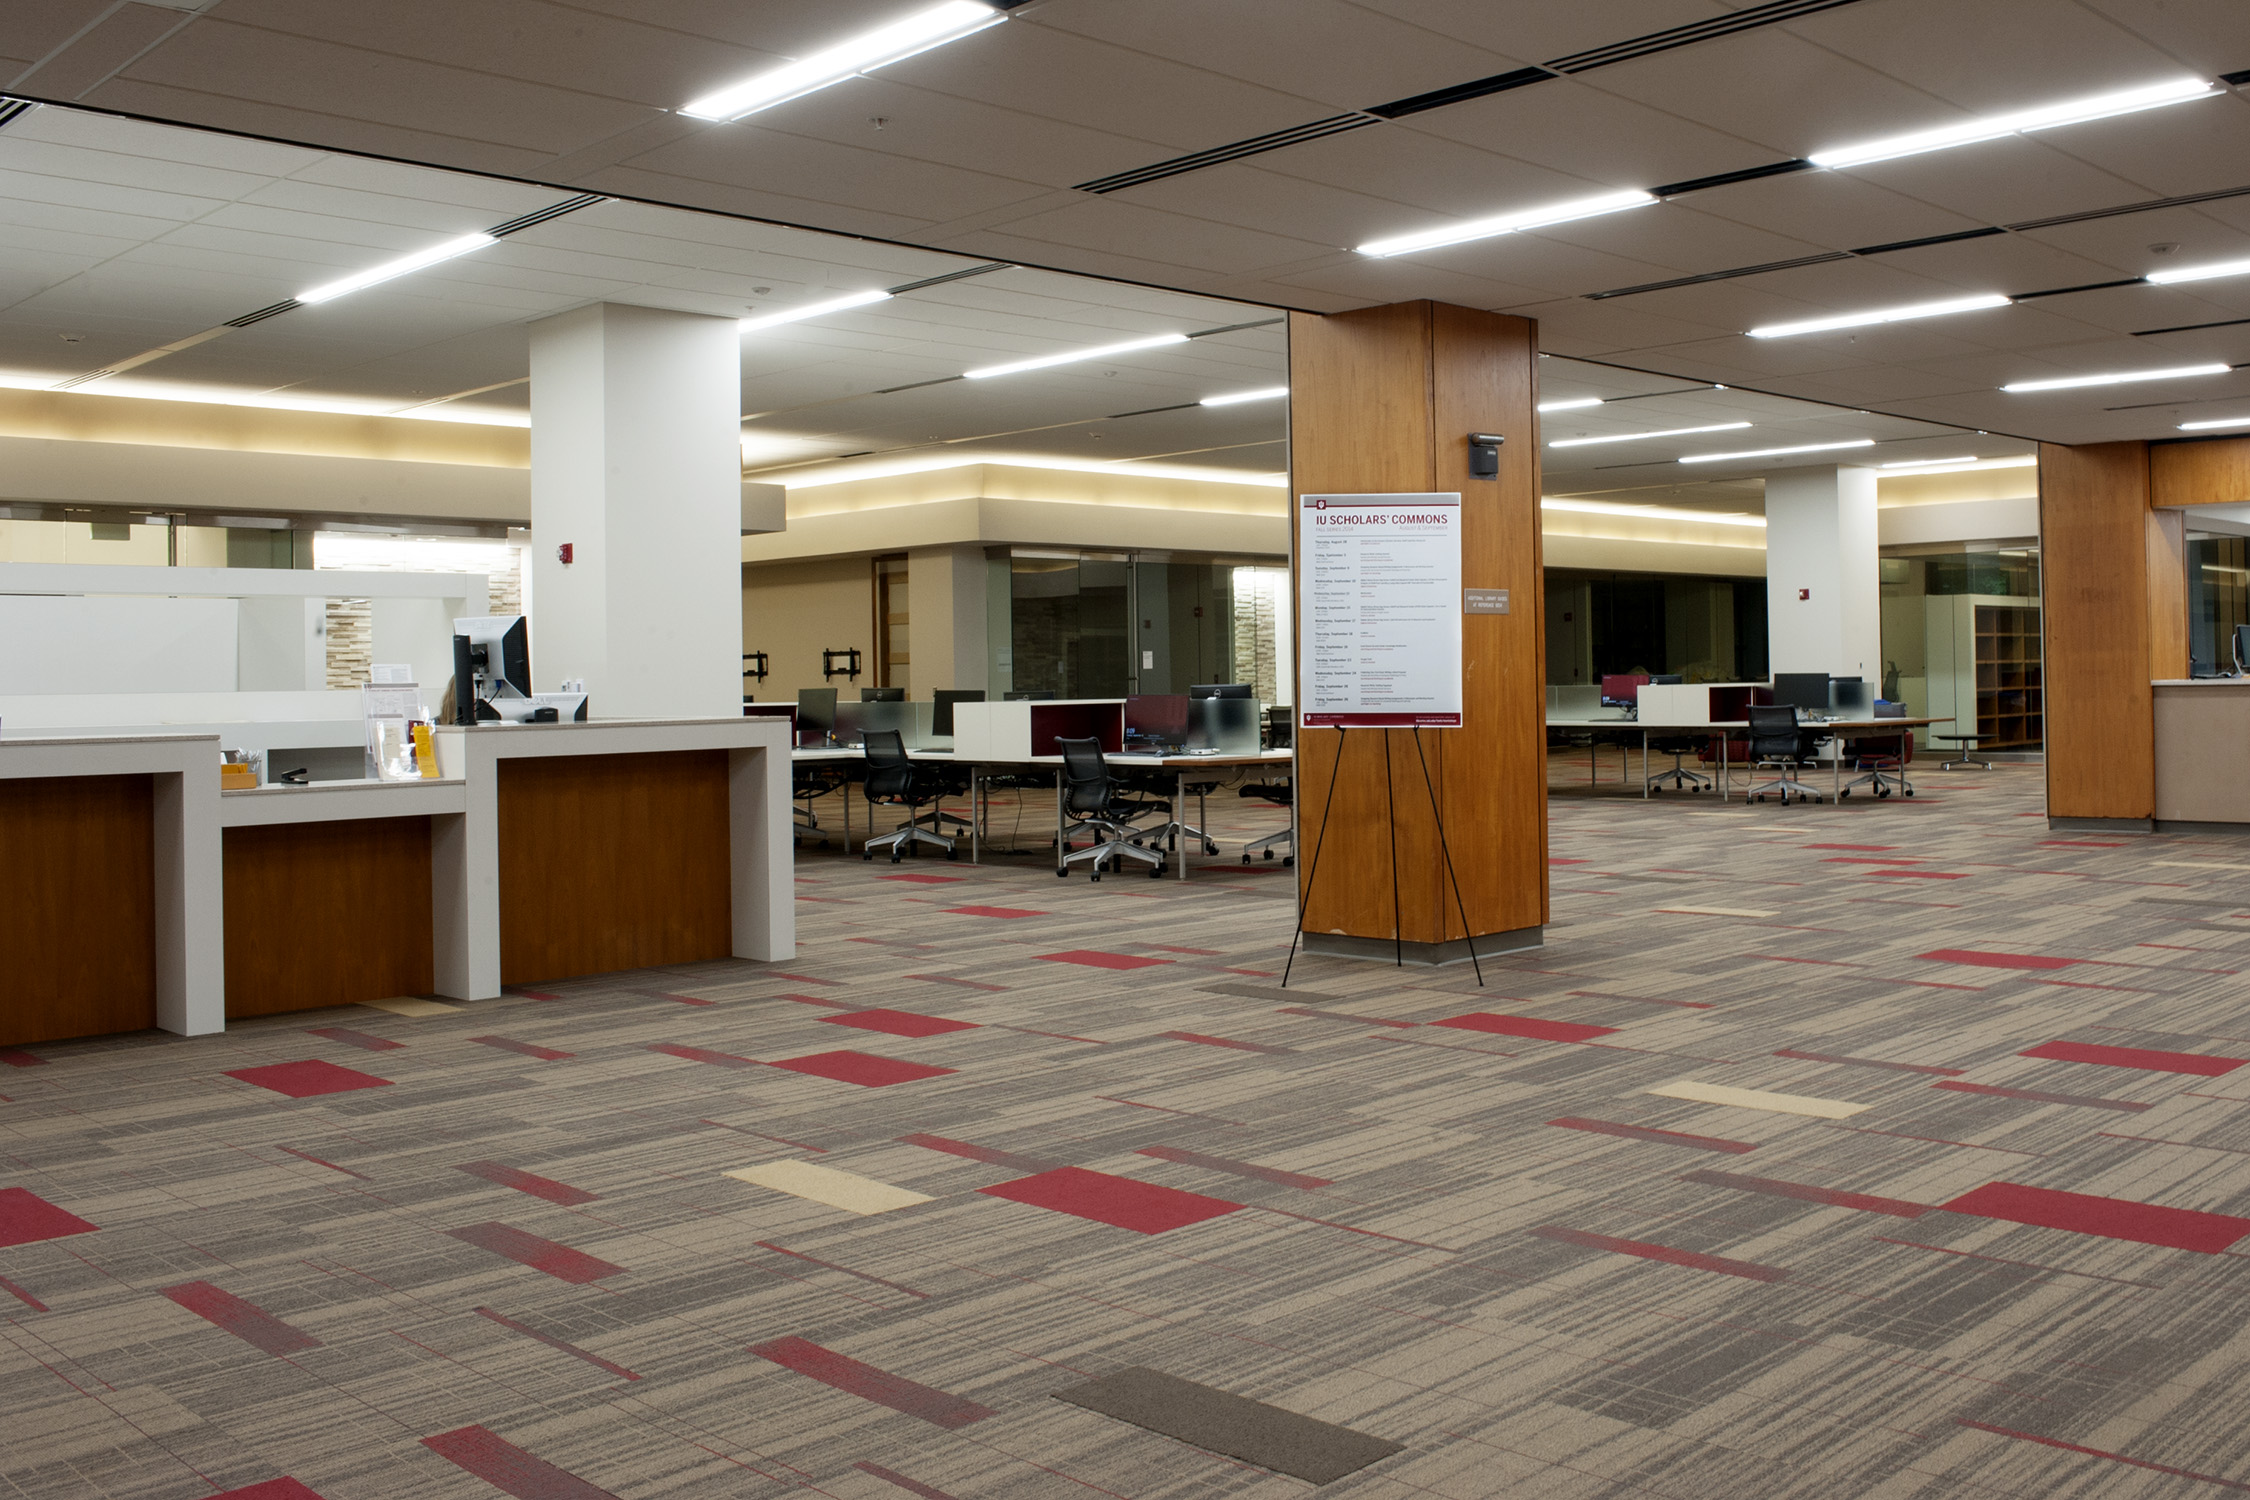 Scholars commons grand opening indiana university libraries